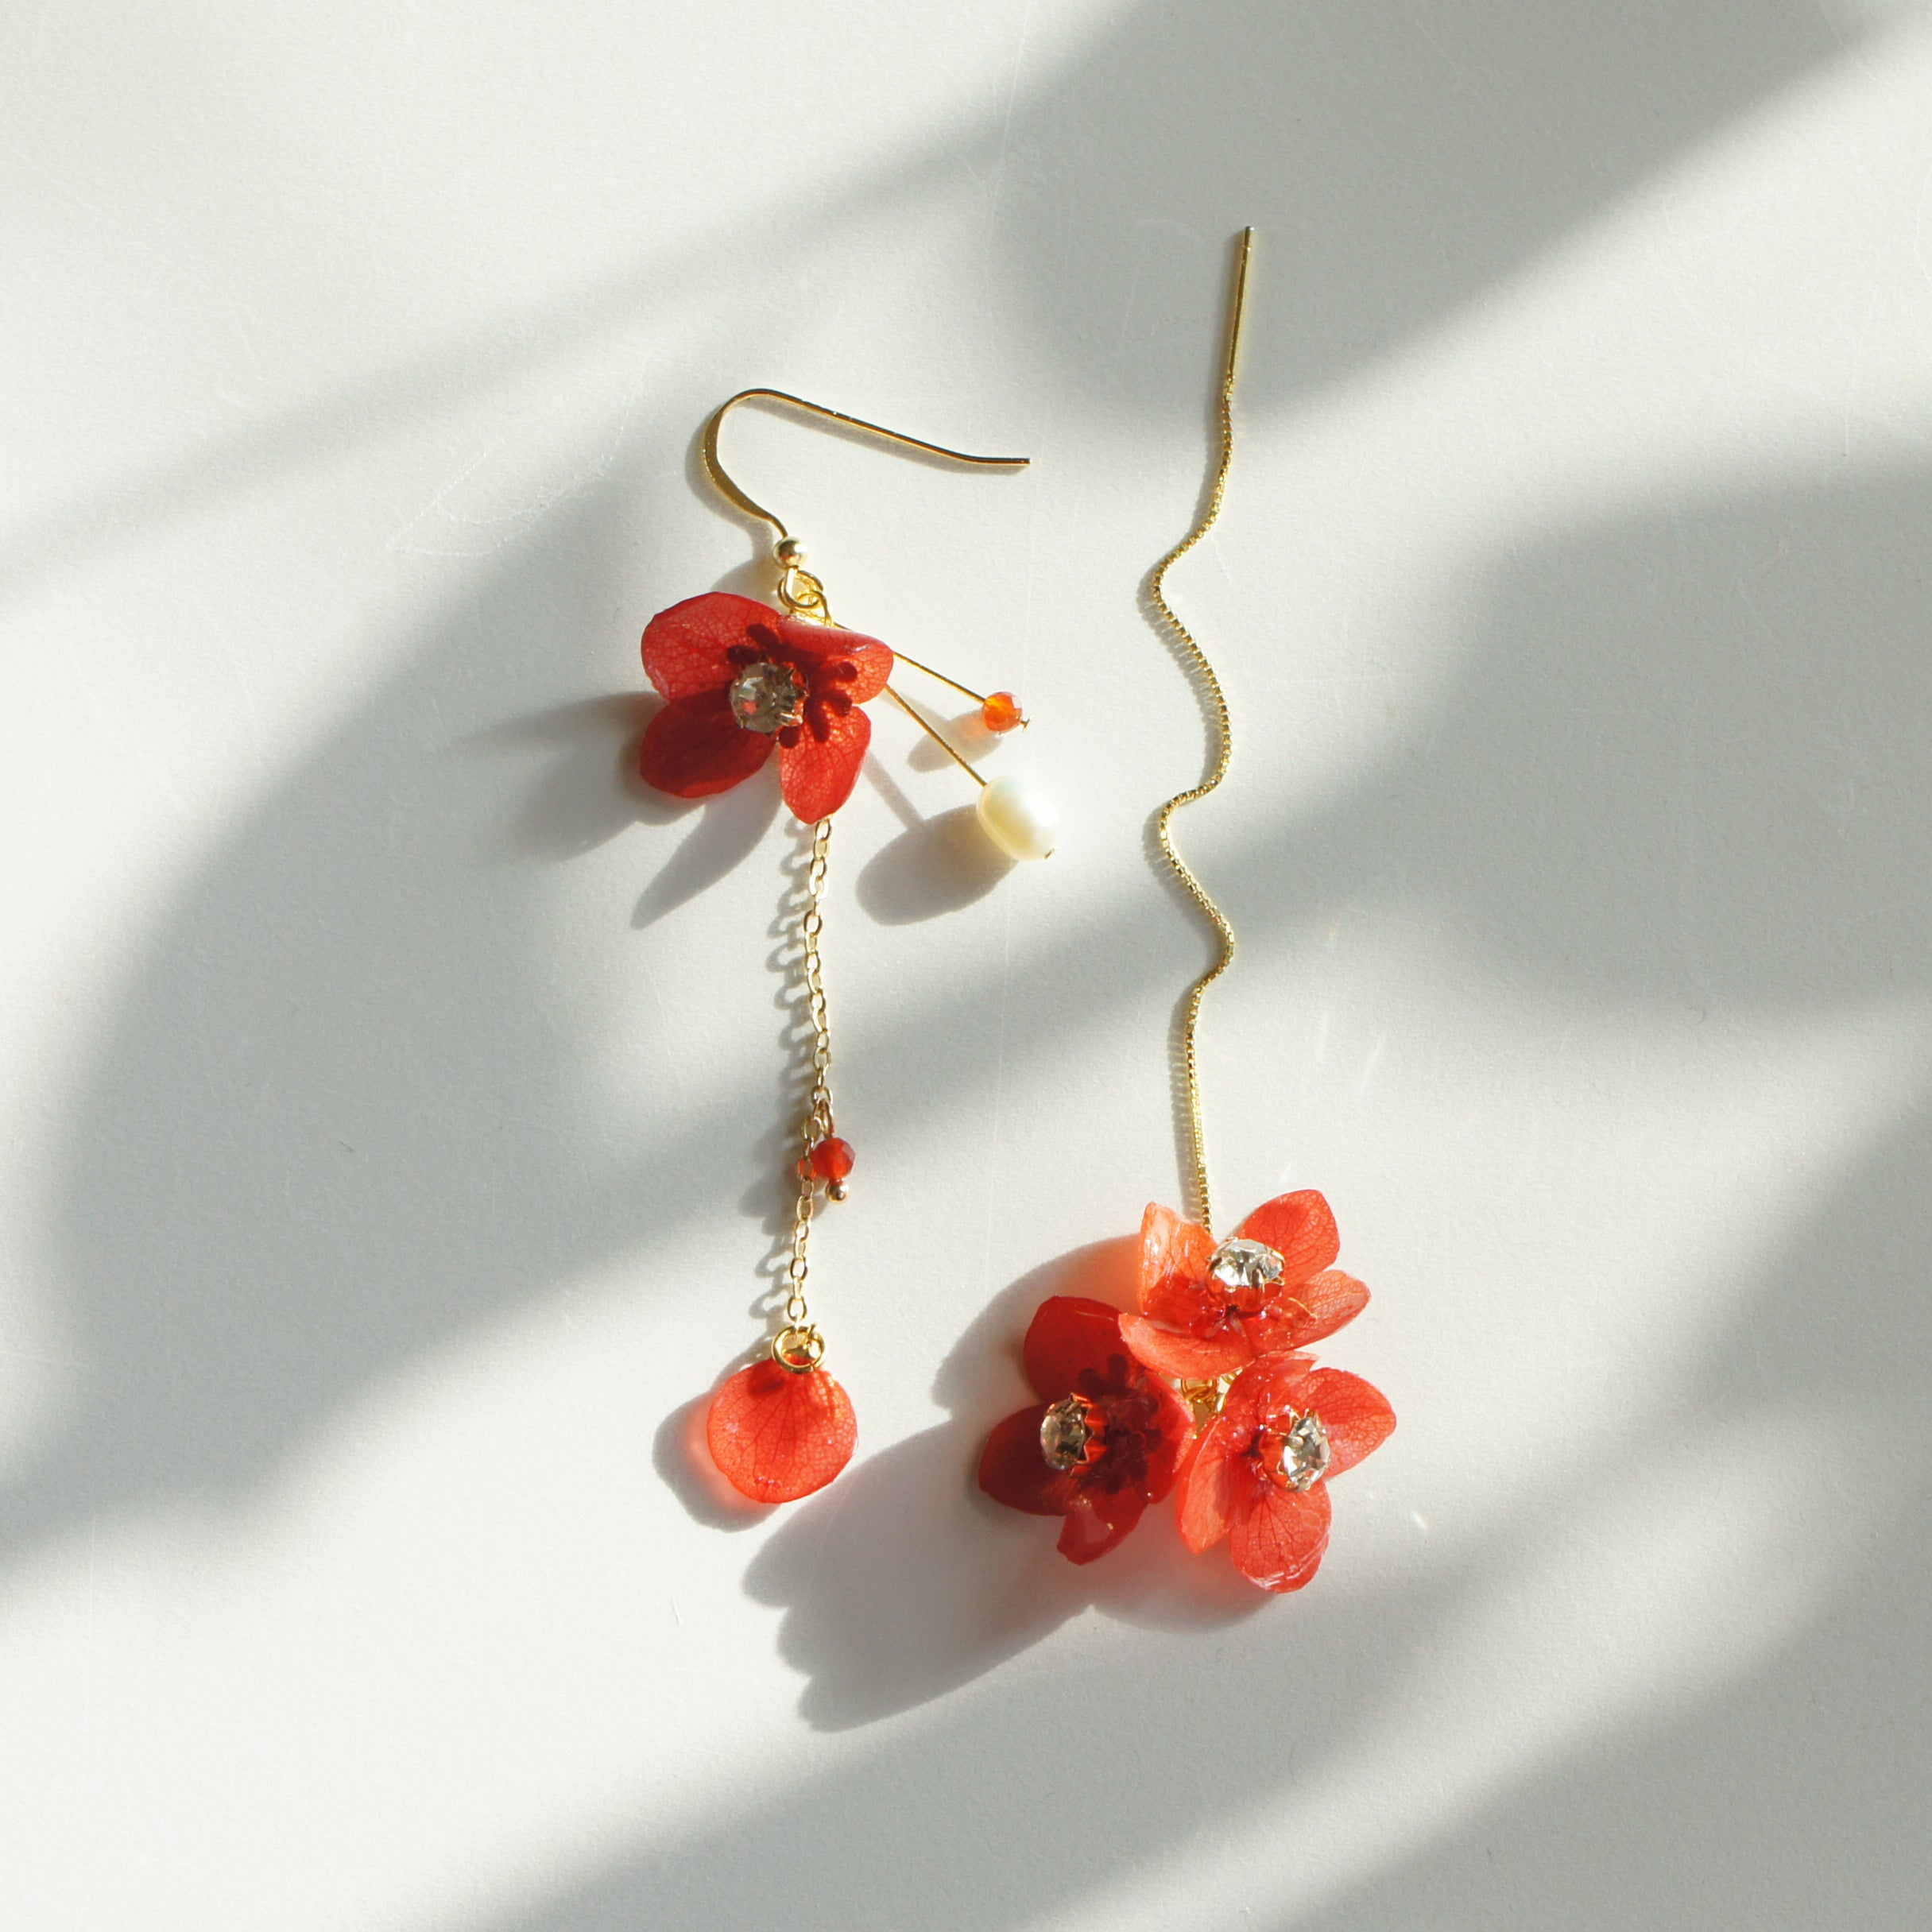 *REAL FLOWER* Mariesii Red Hydrangea Gold Vermeil Single Earring/Set